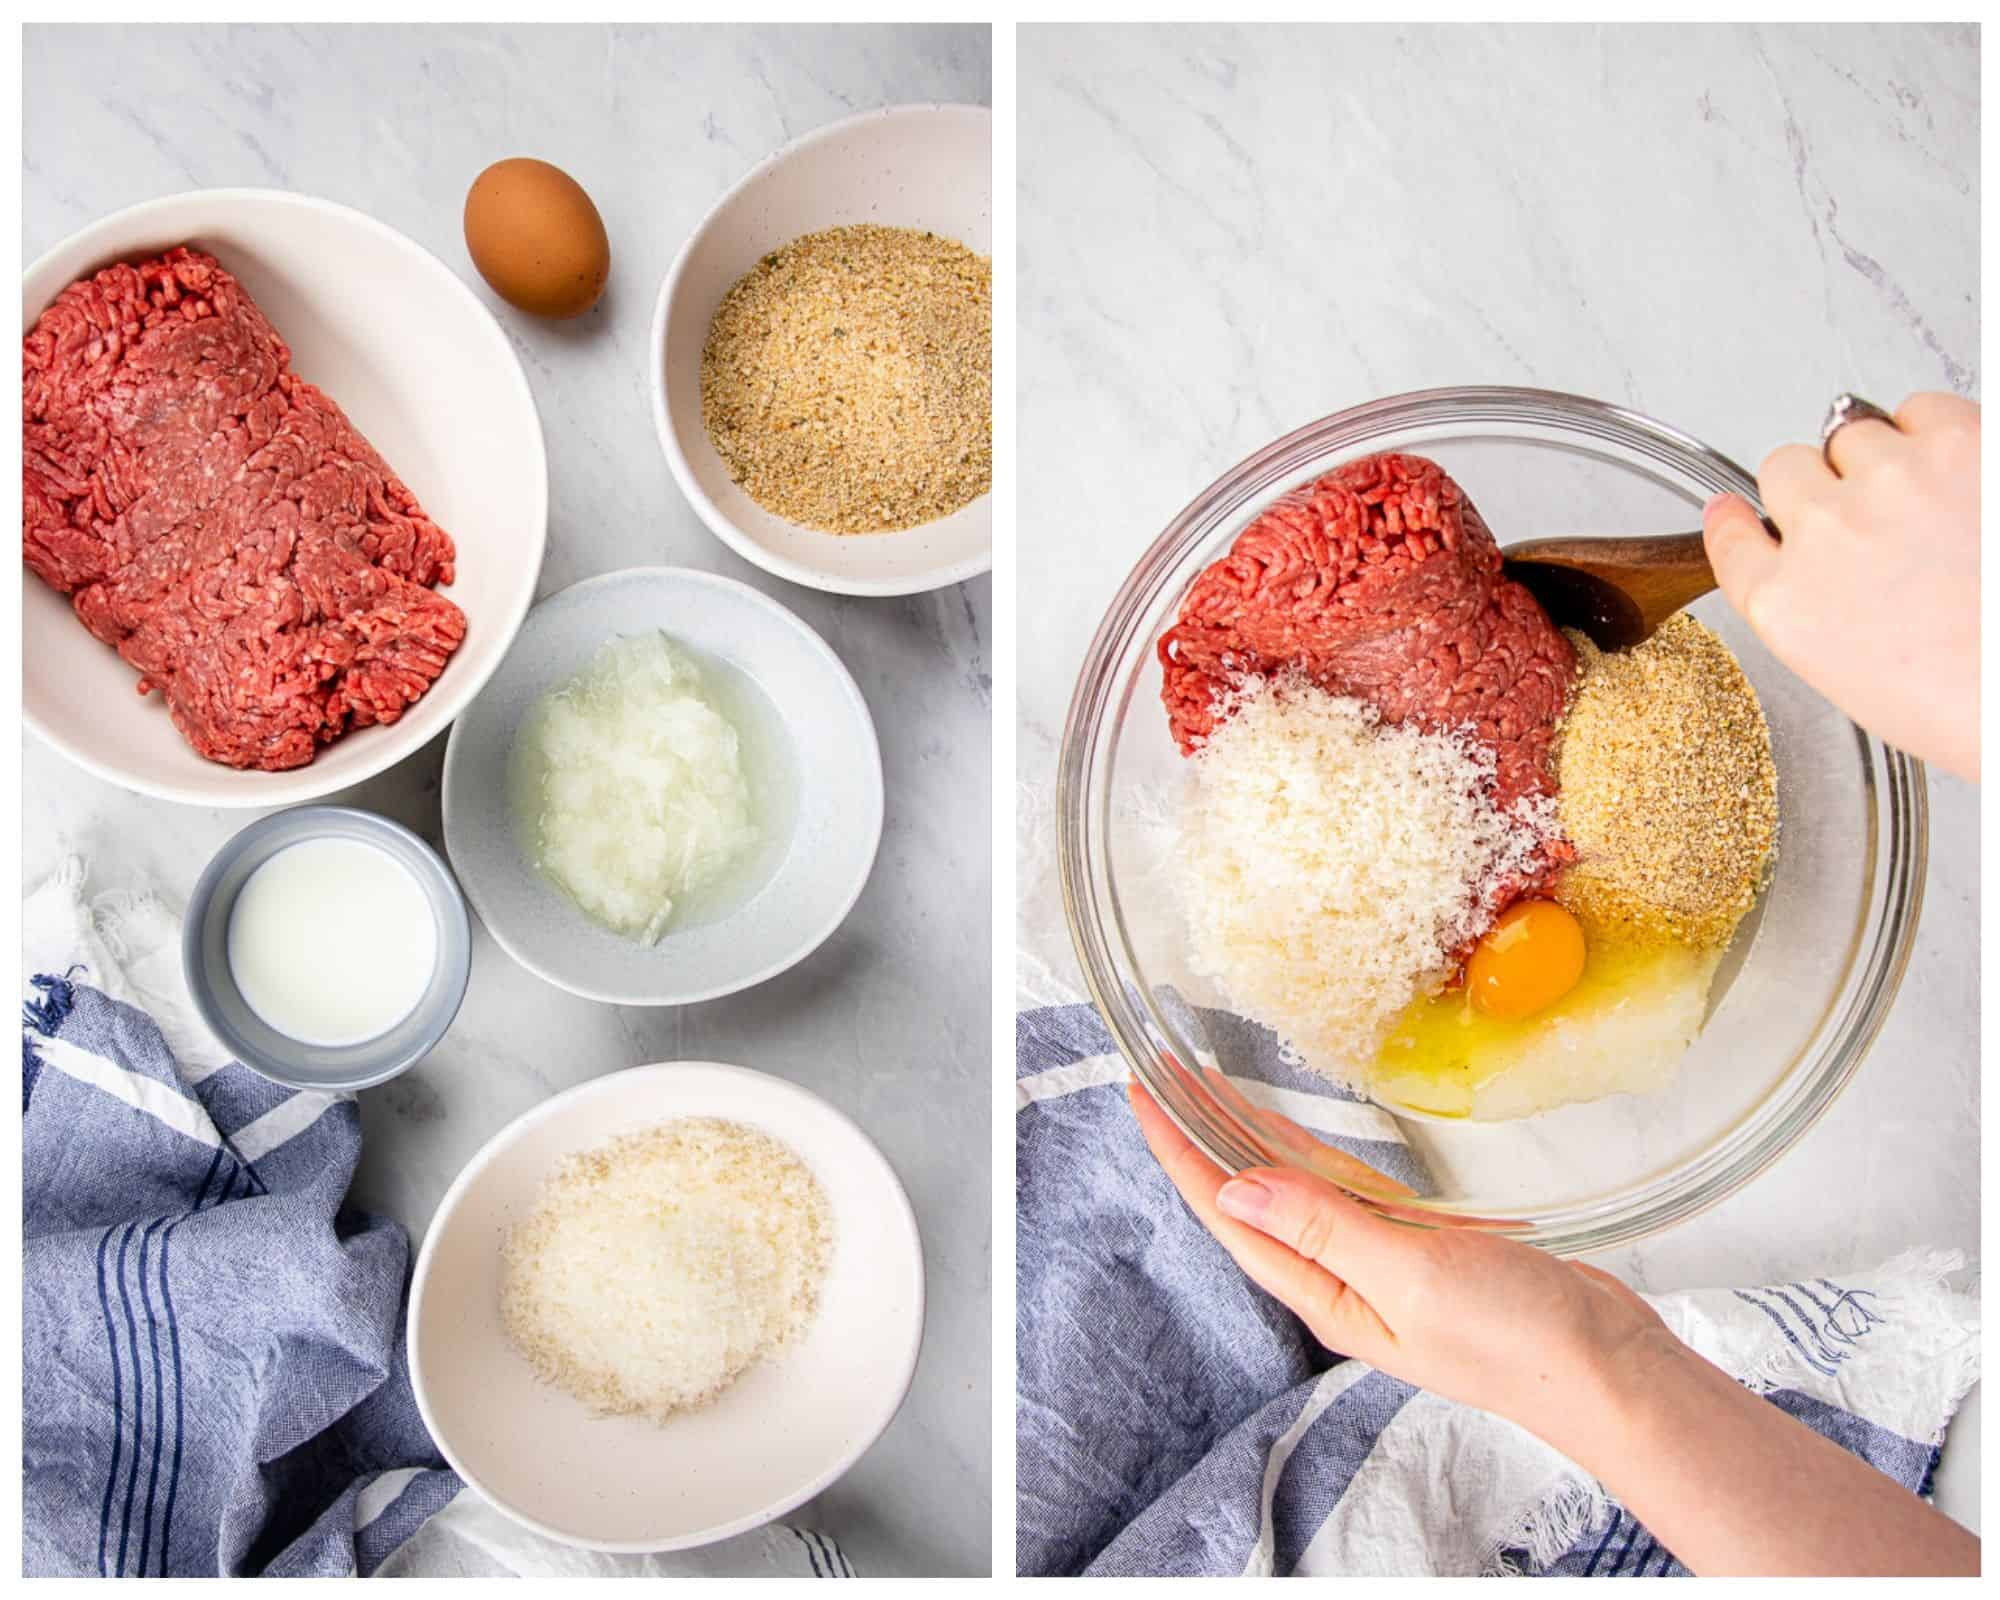 Process photos of how to make Oven Baked Meatballs.